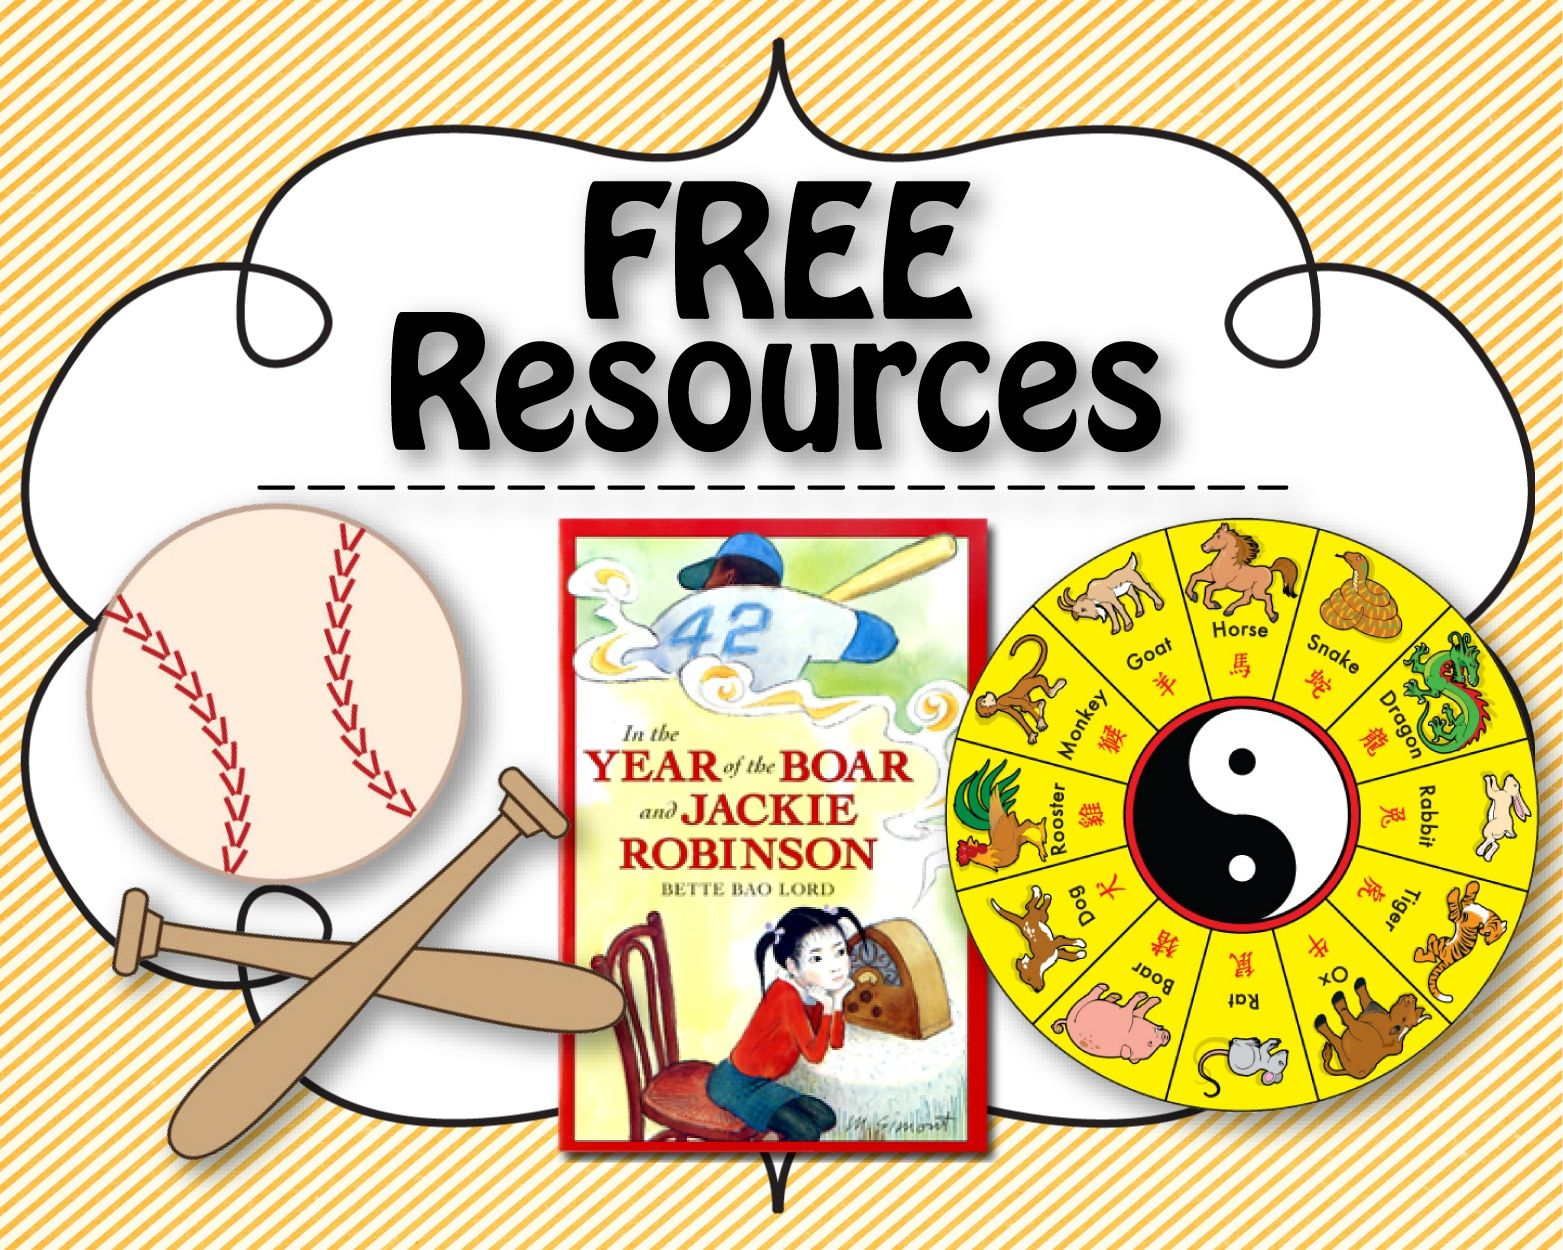 Free Resources Downloads In The Year Of The Boar And